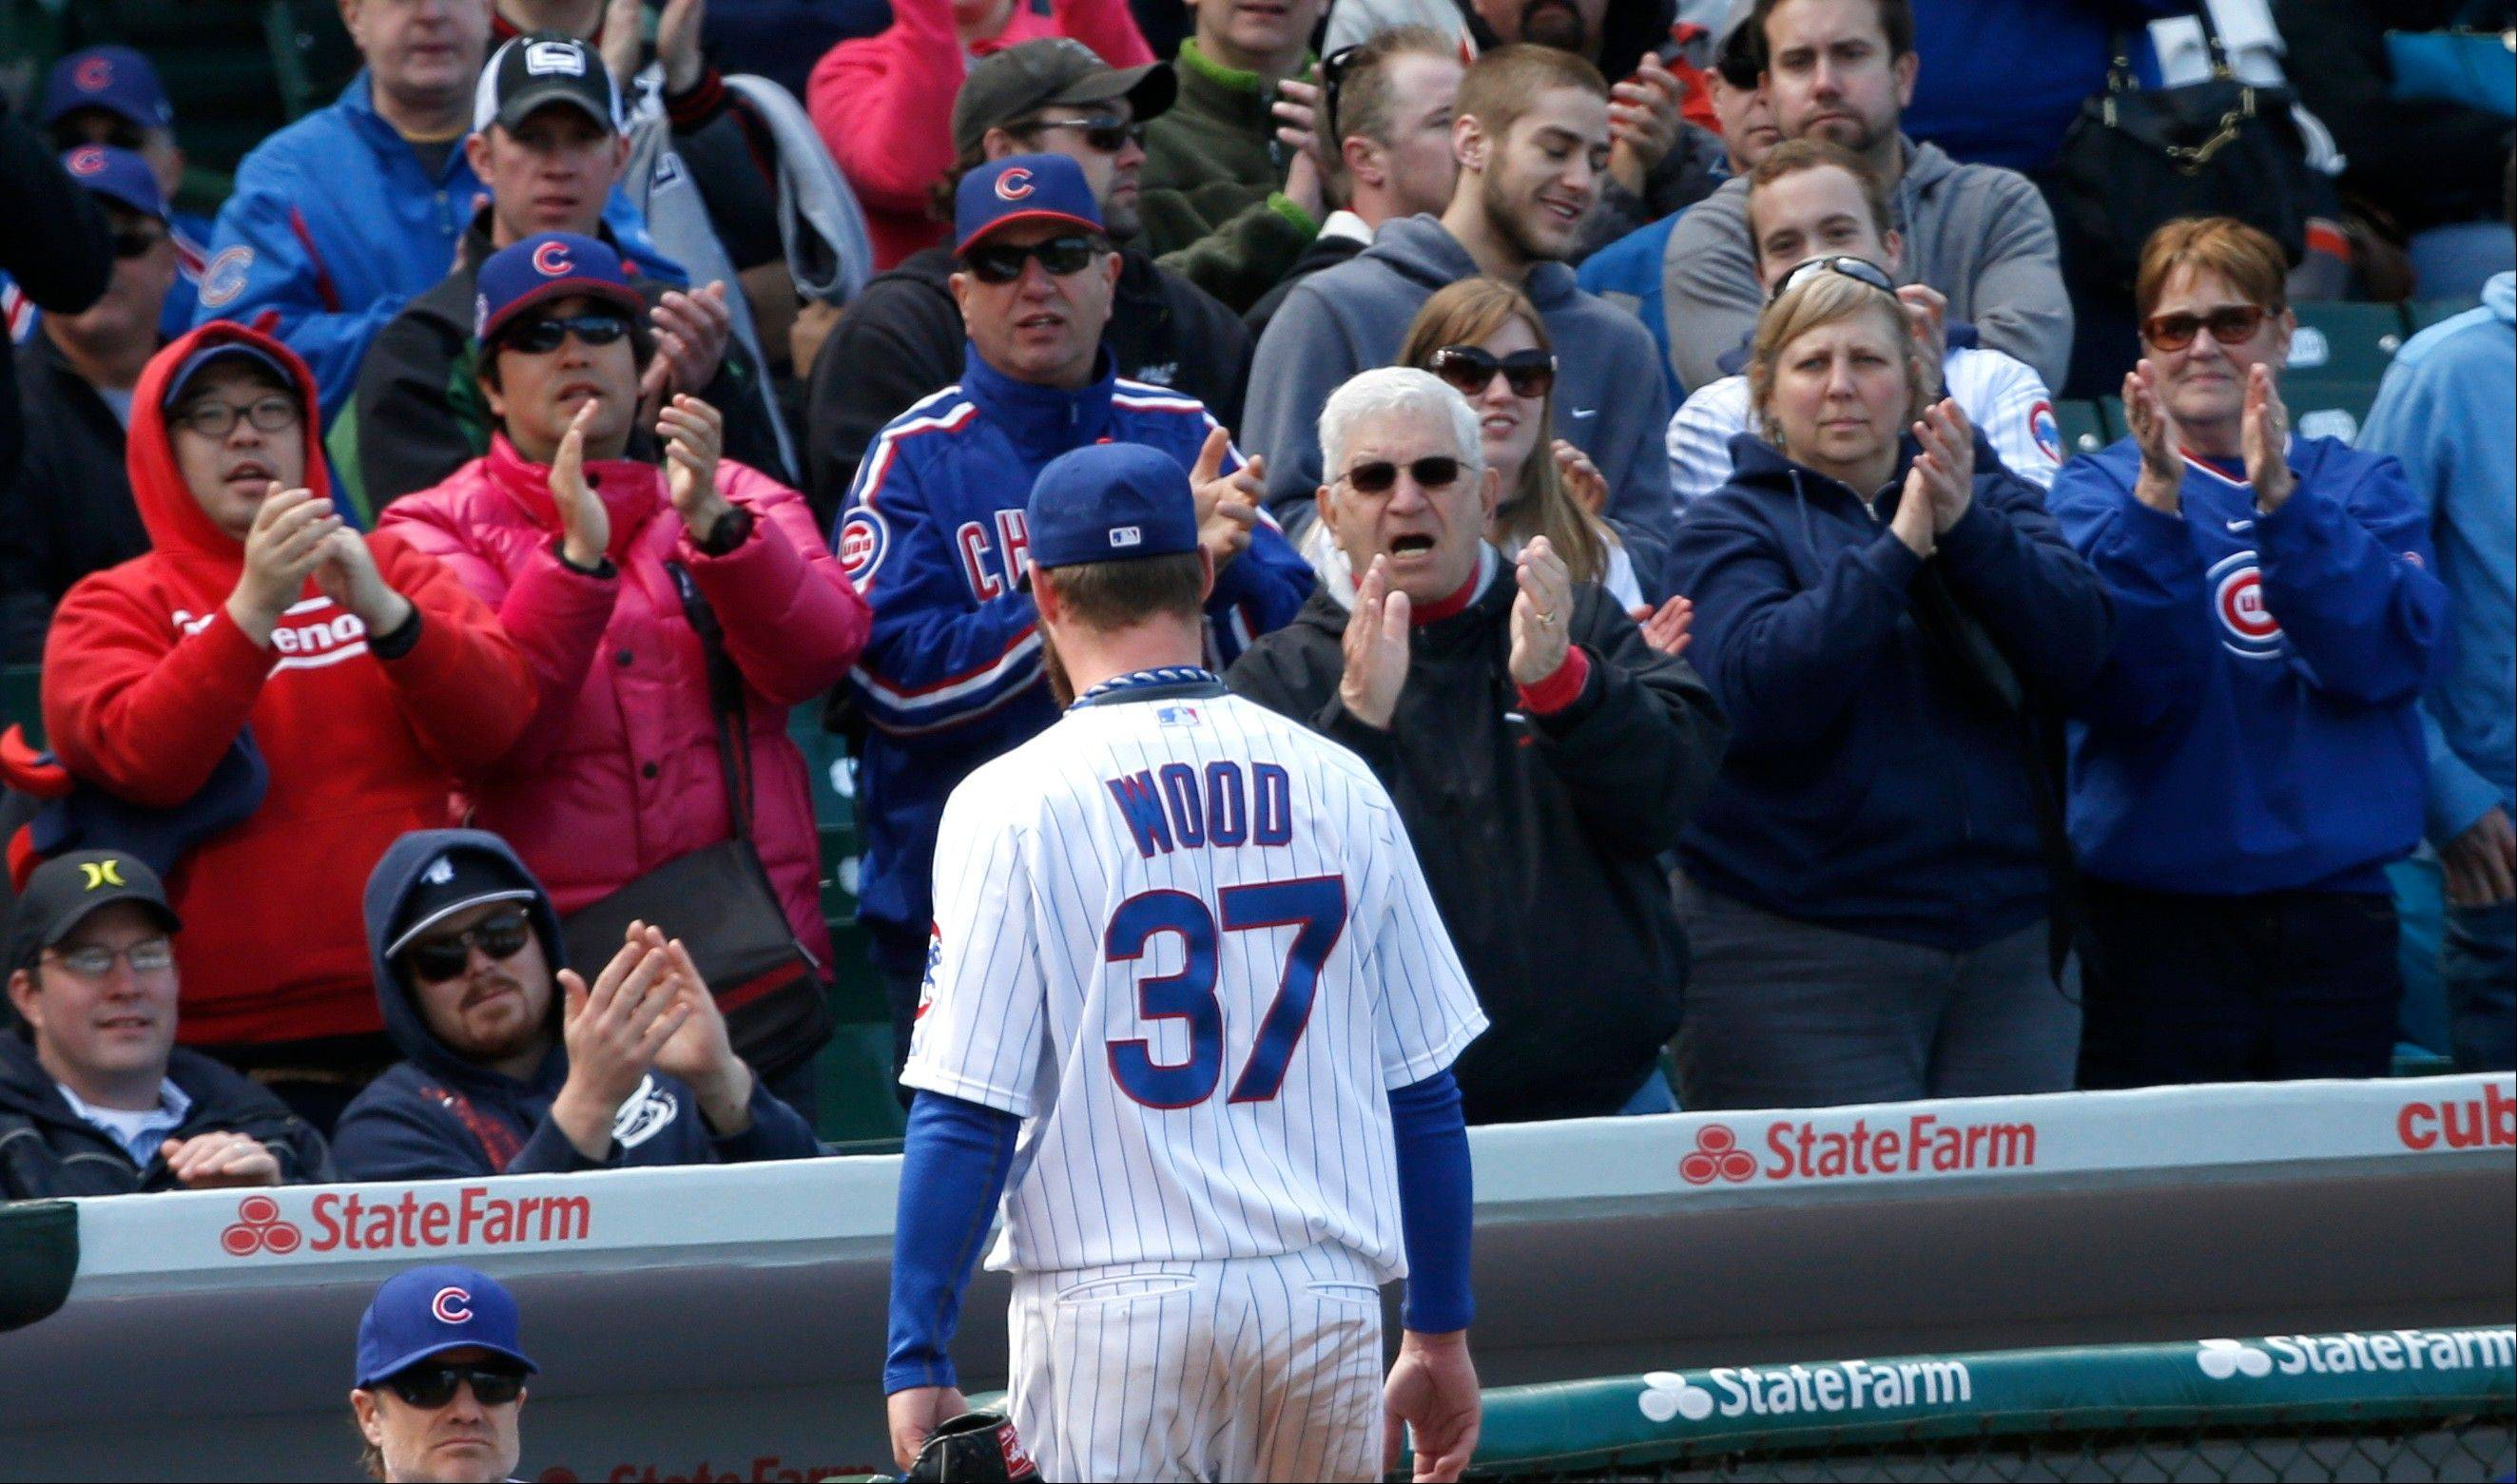 Starting pitcher Travis Wood leaves the game to applause of fans during the eighth inning Thursday. Wood shutout the Padres through seven innings, but San Diego ralied for a 4-2 win.